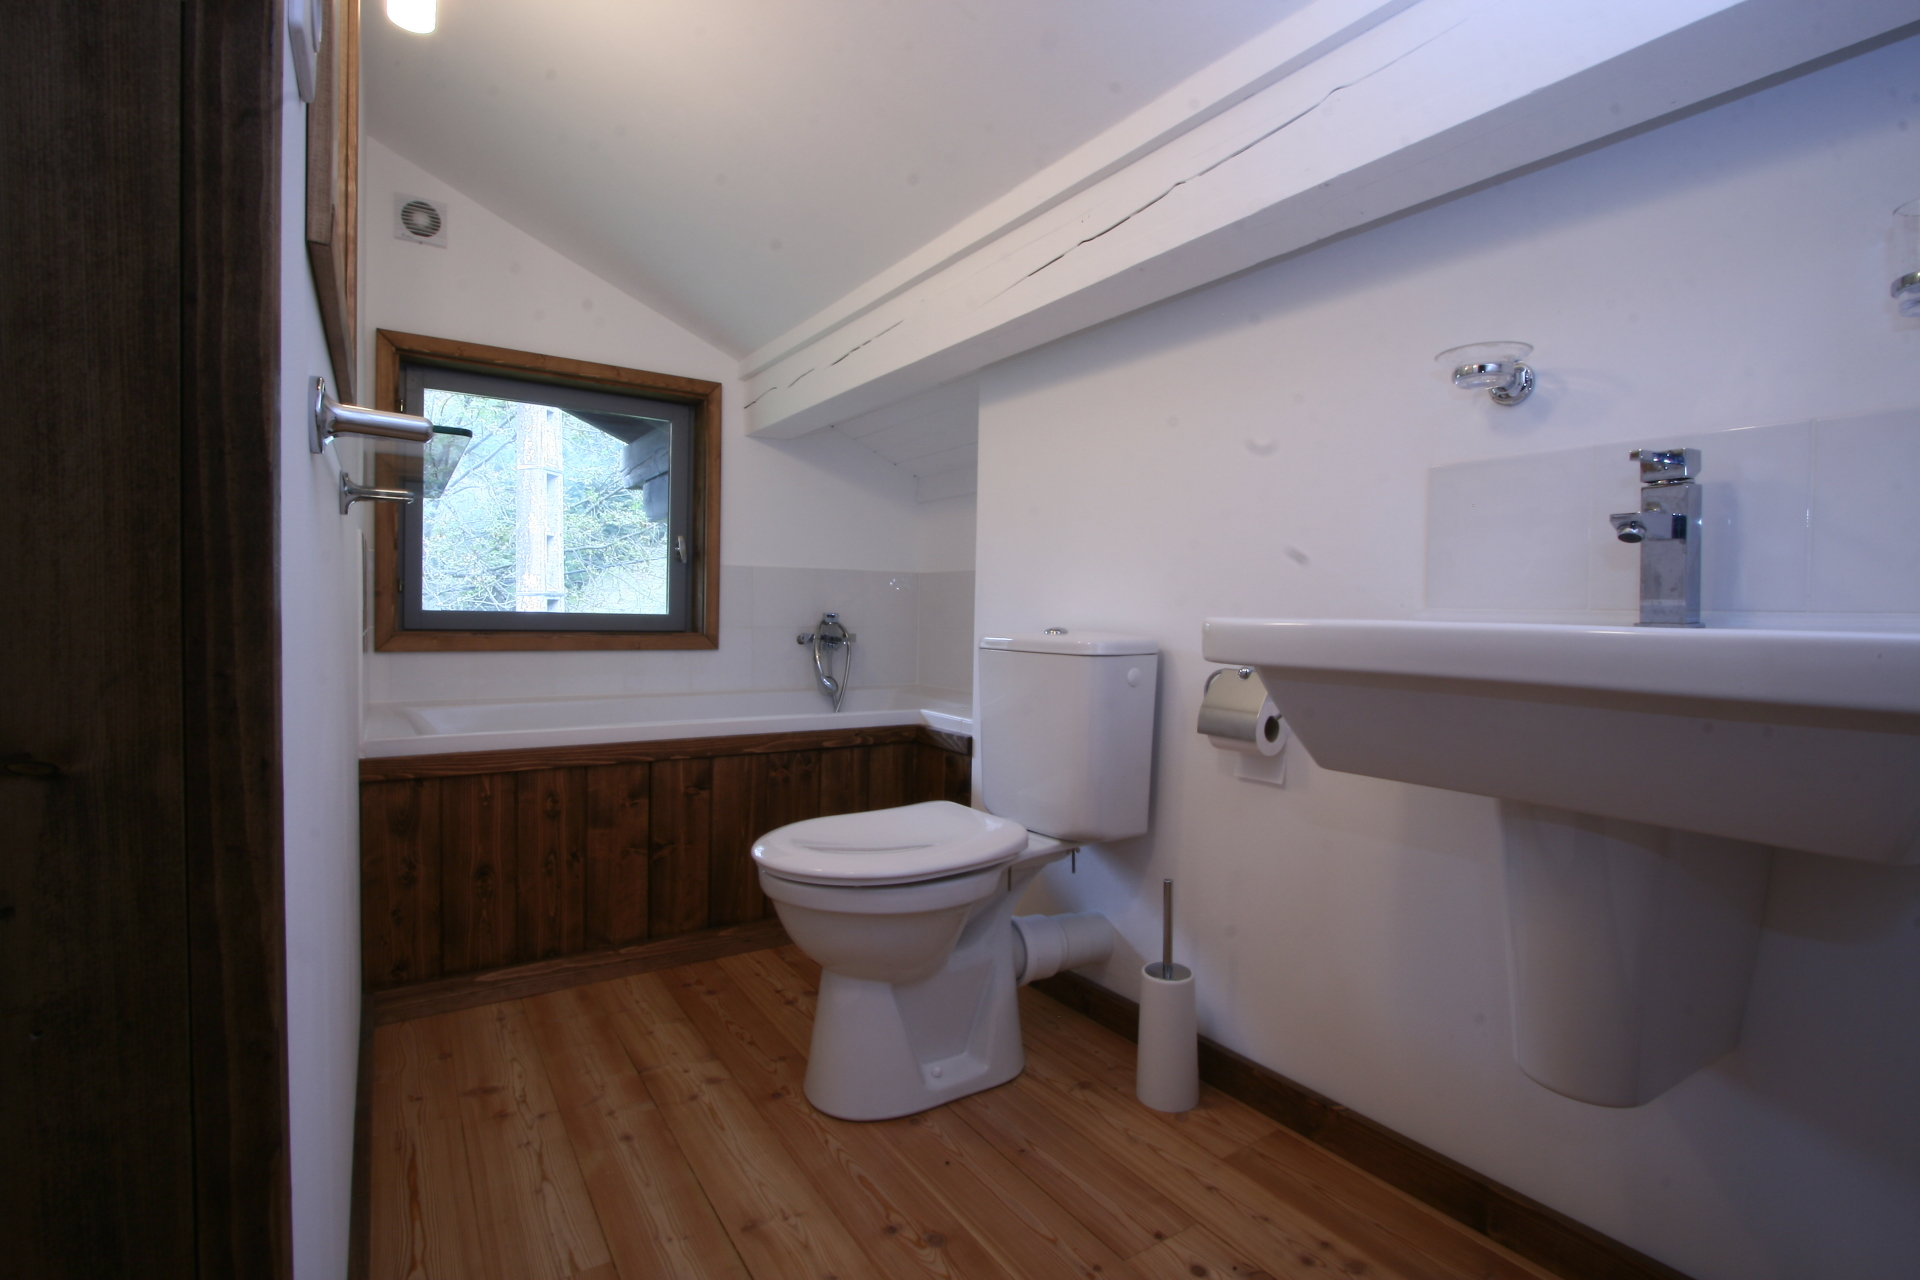 Chalet bathroom | Renovation Solutions